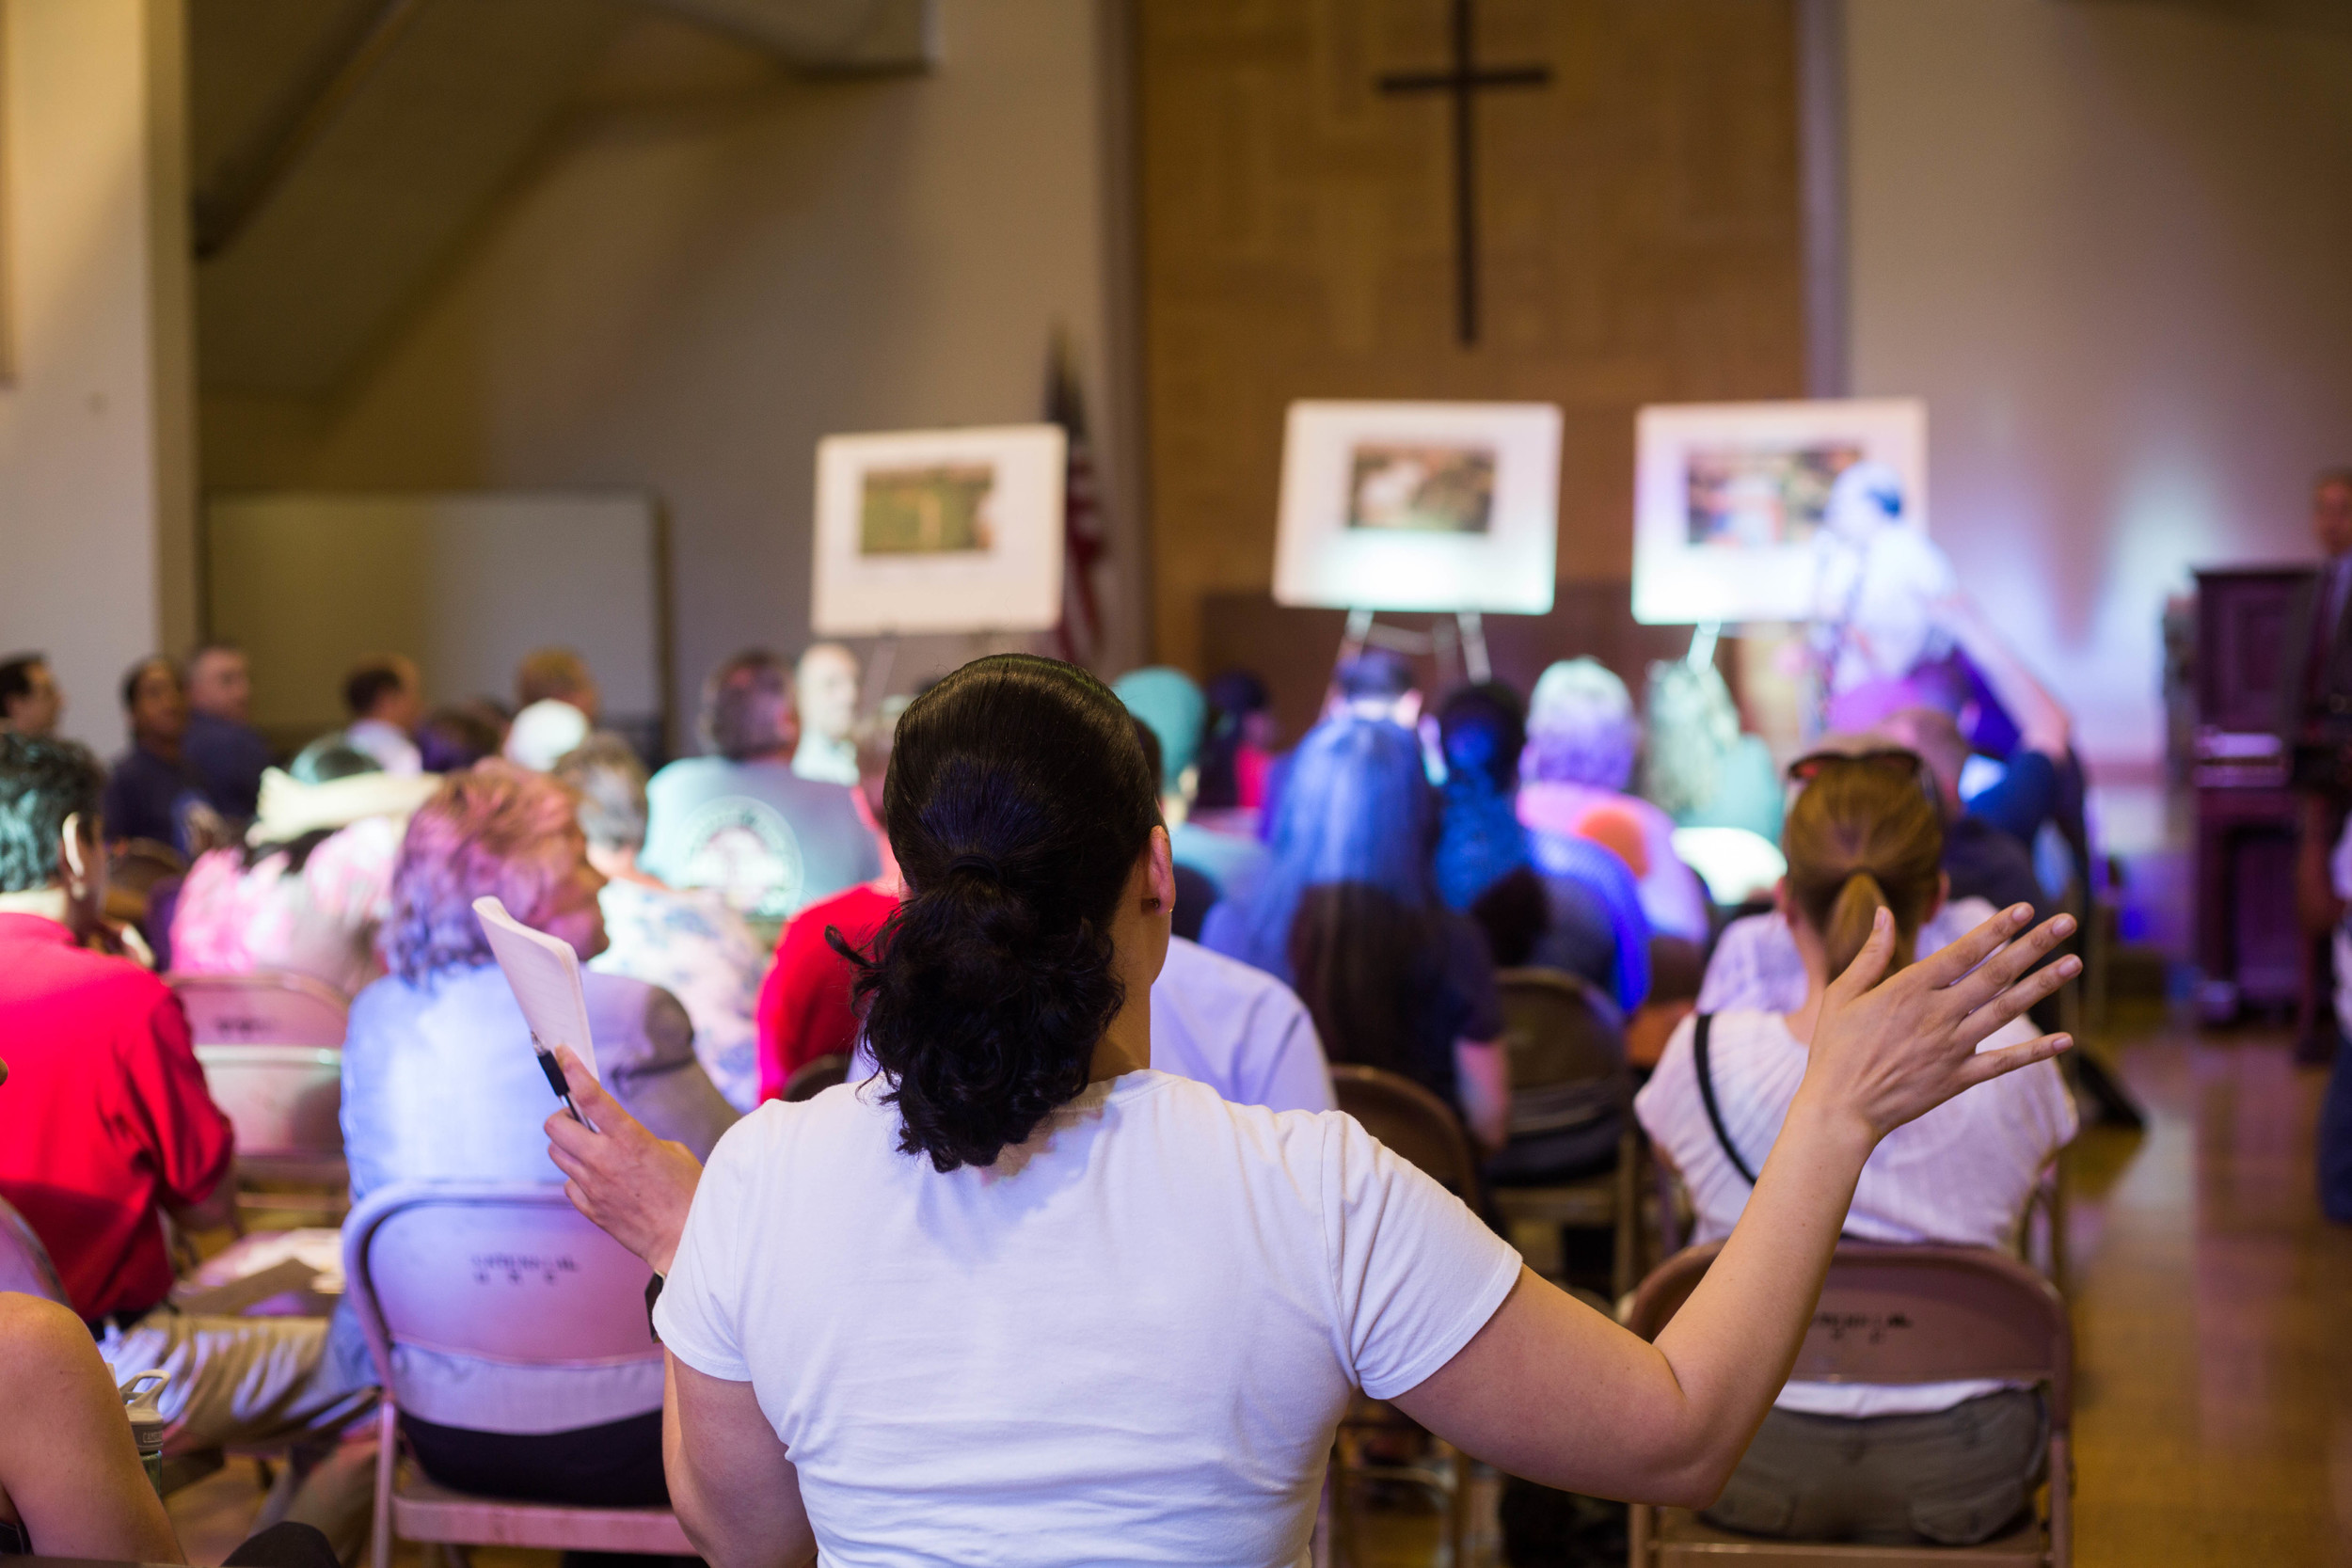 Community meeting held at Centennial Church to discuss former mangan gun range toxic lead contamination in Sacramento, Calif. April 20, 2016.